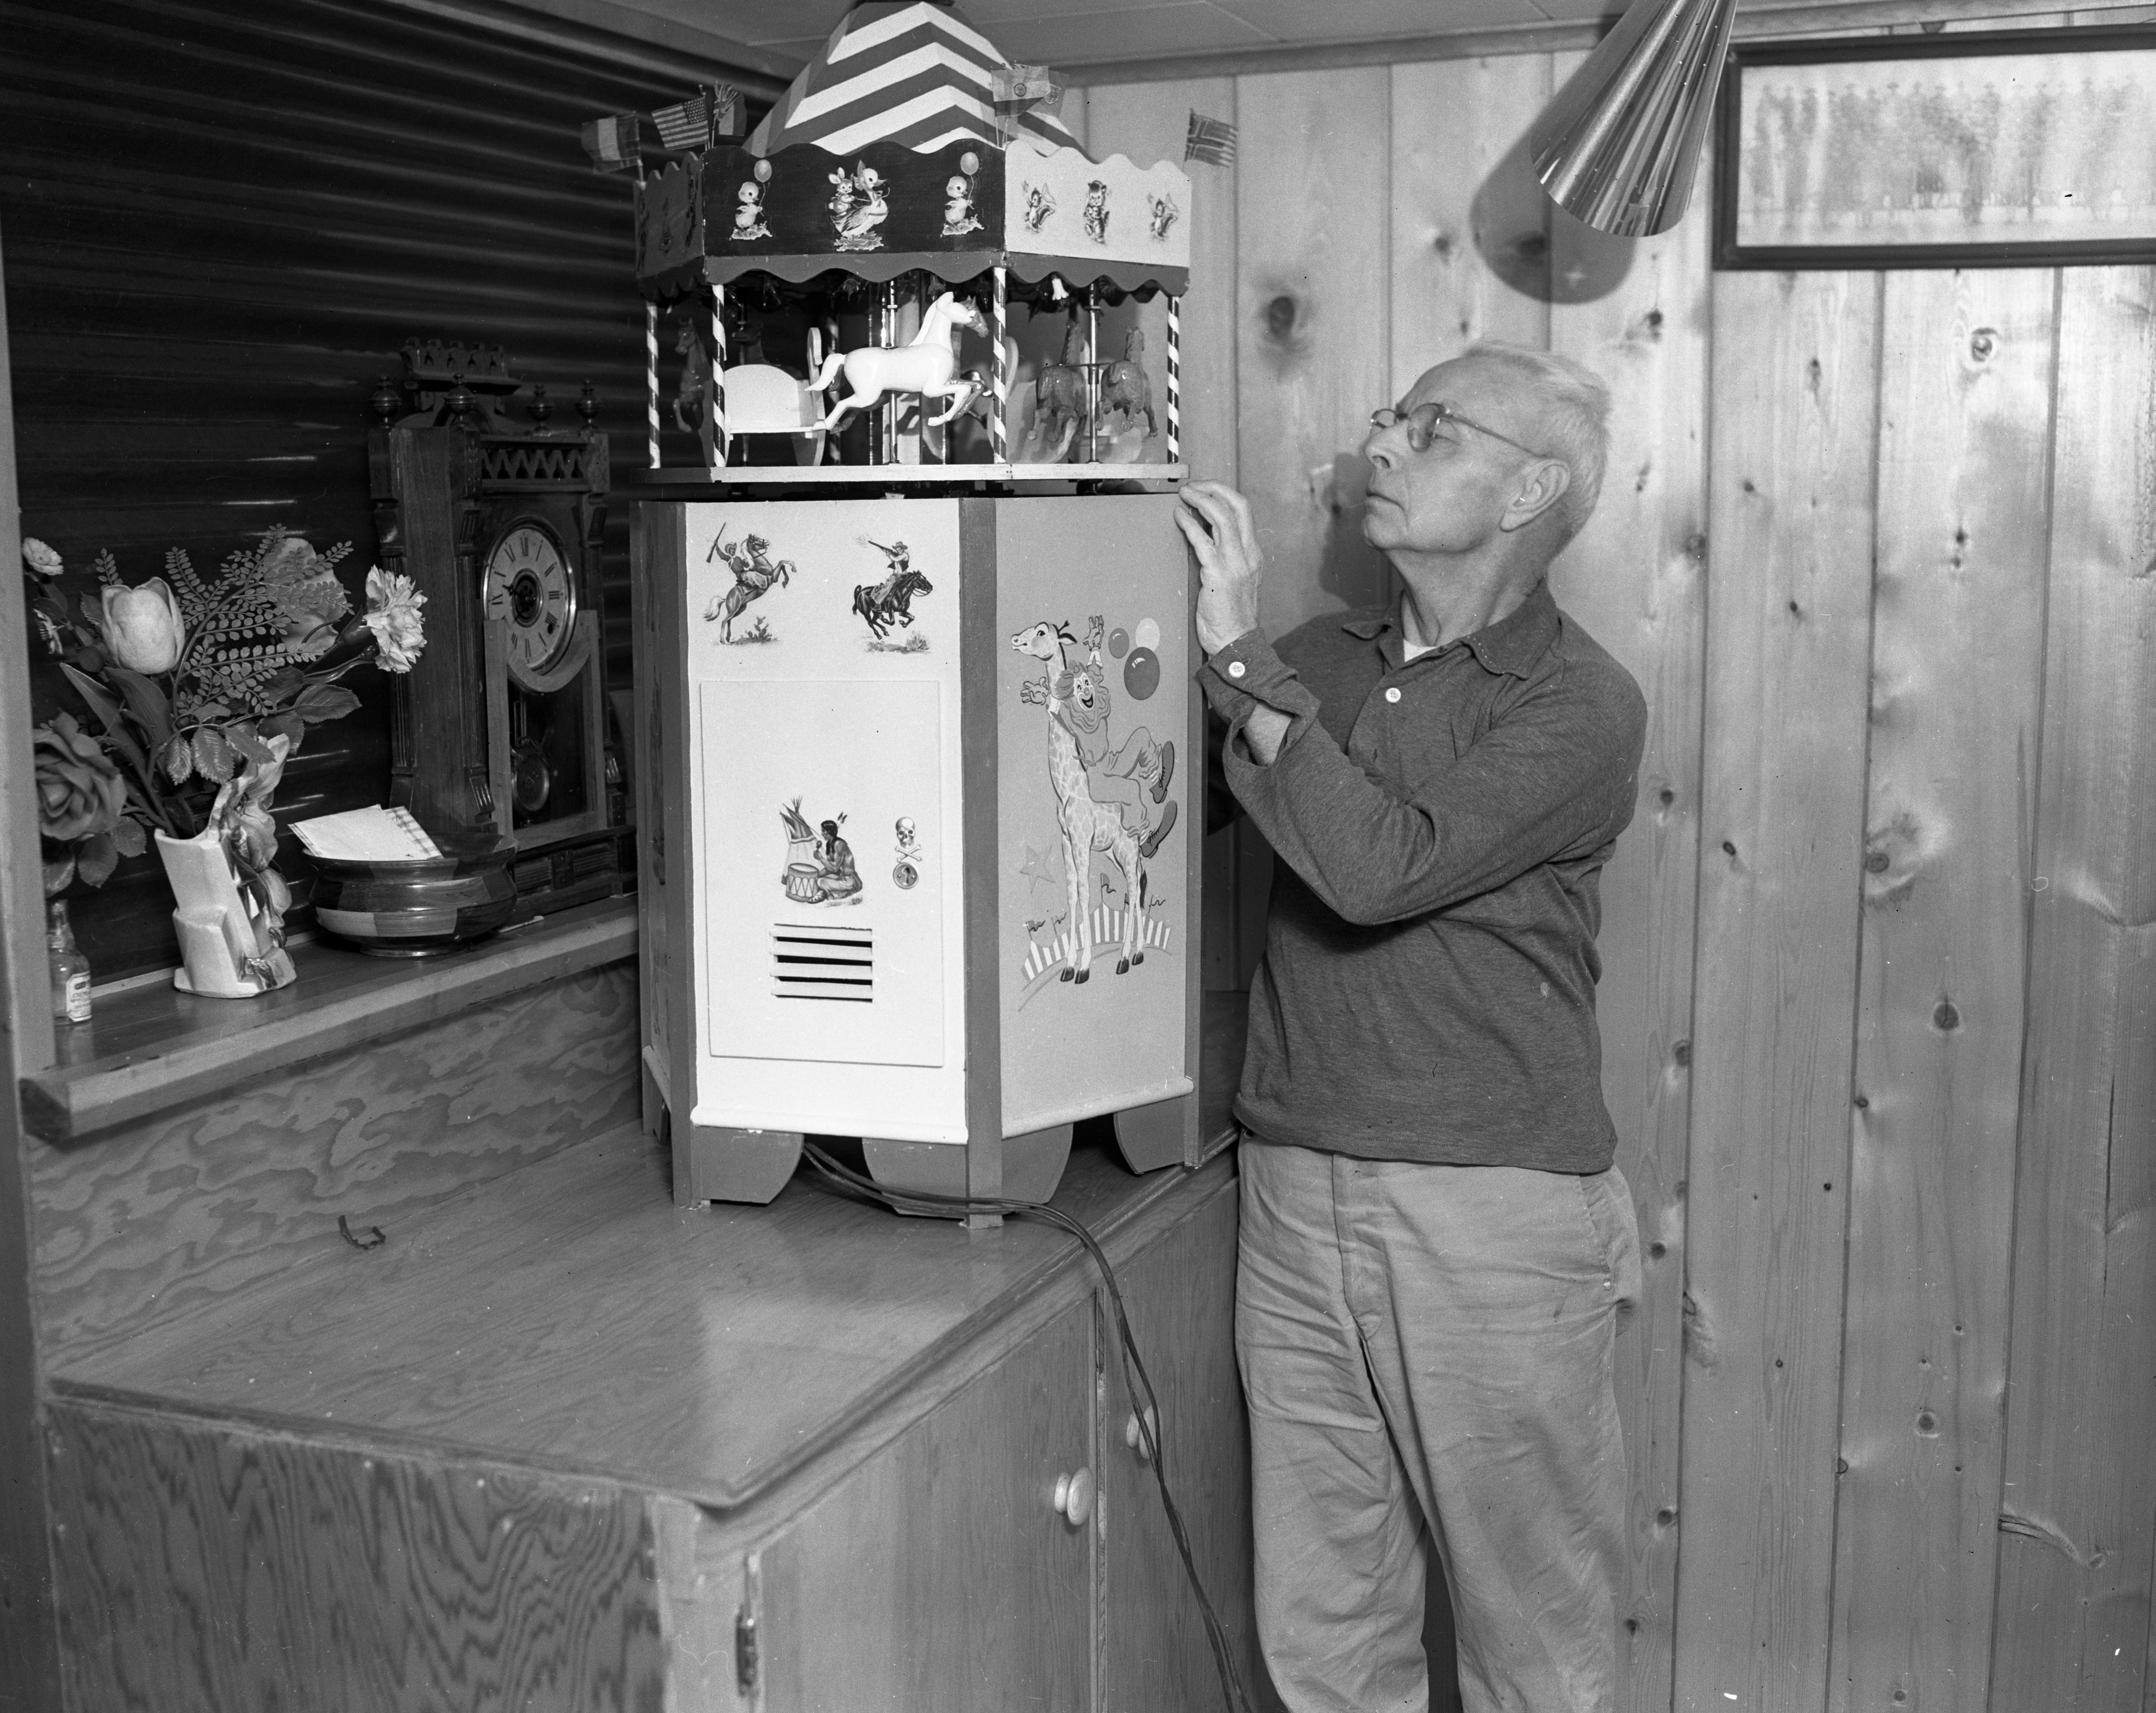 Ernest Mack makes a merry-go-round for his grandchildren, December 1963 image